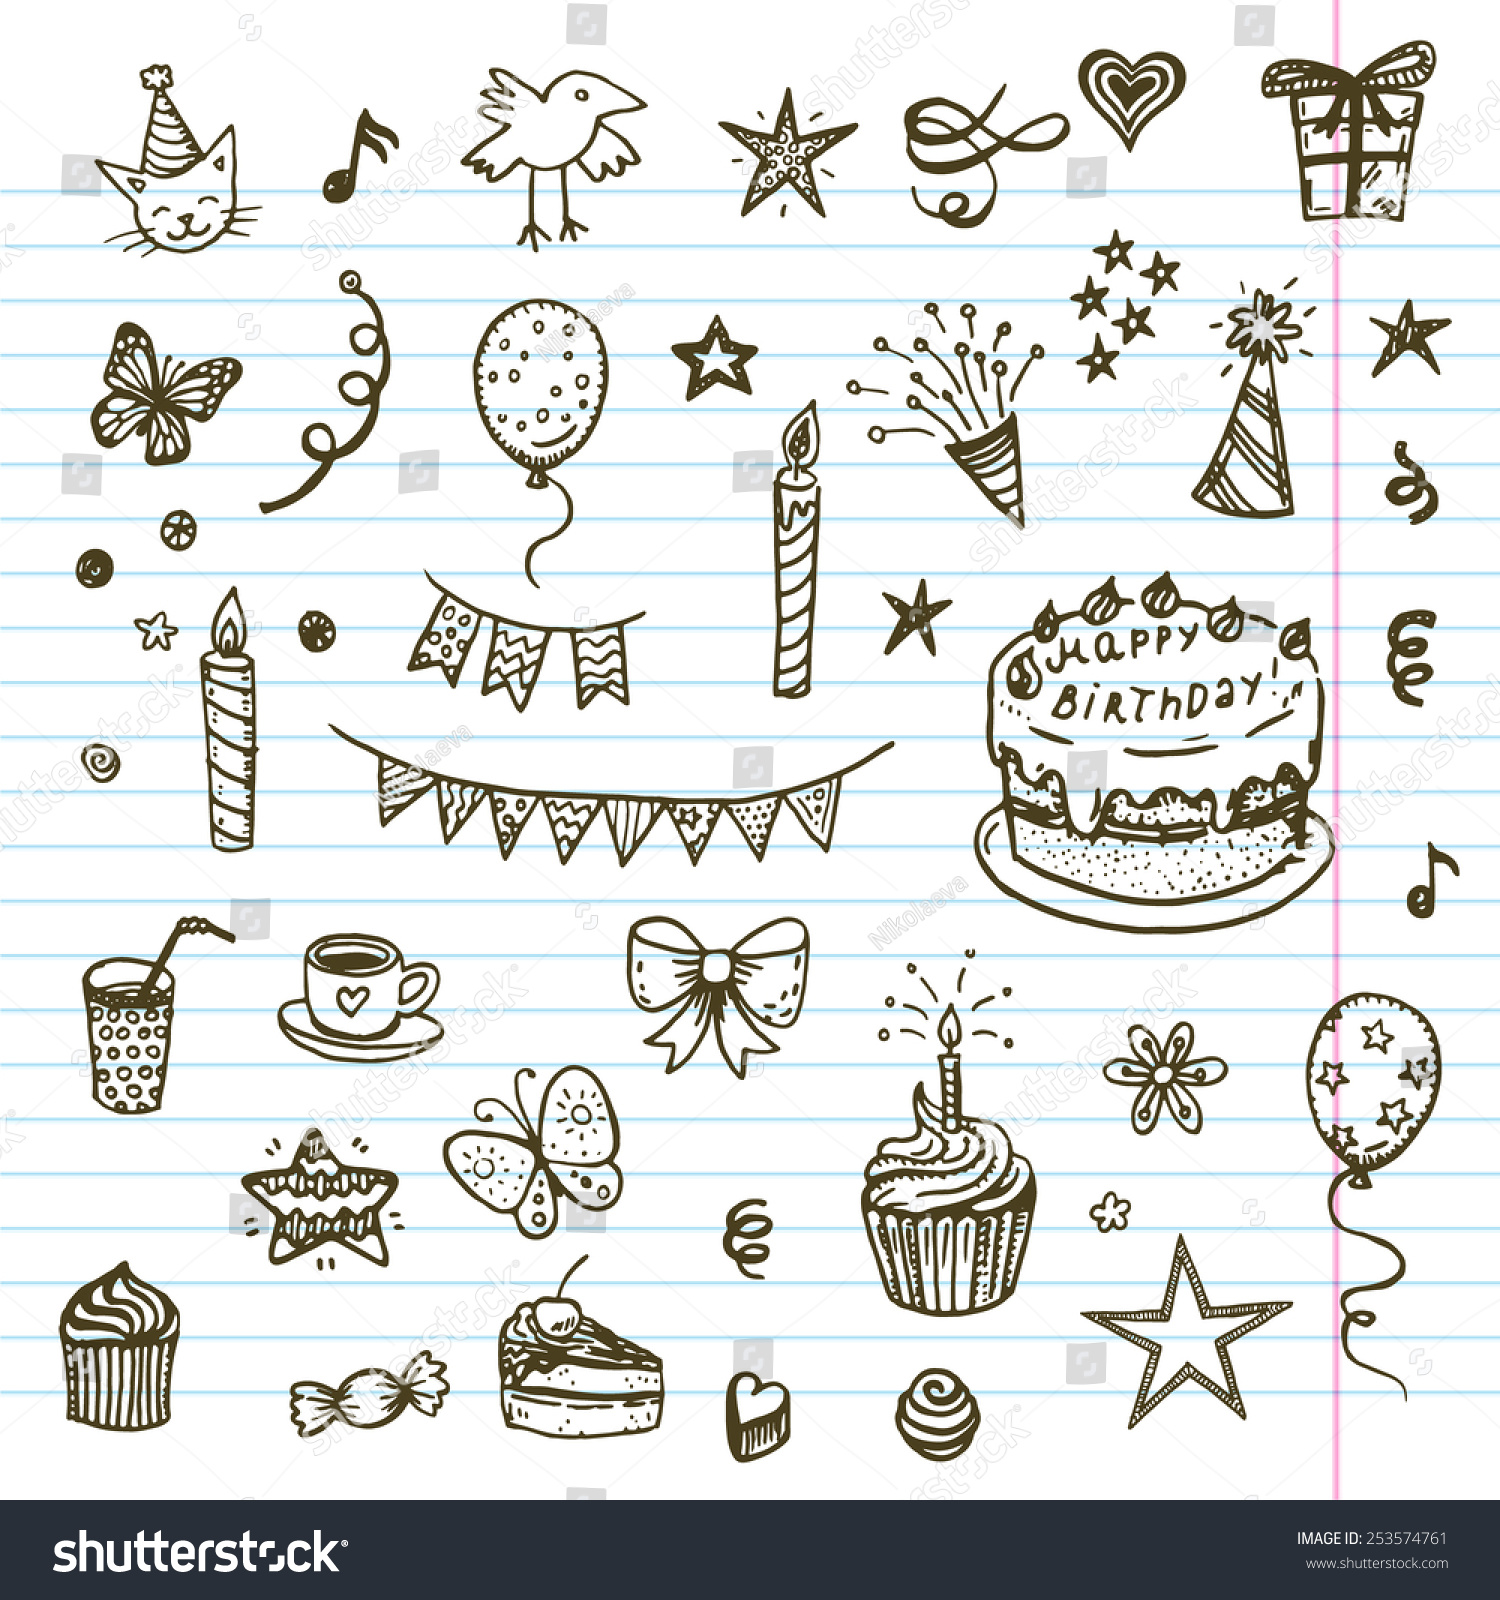 Royalty Free Birthday Elements Hand Drawn Set With 253574761